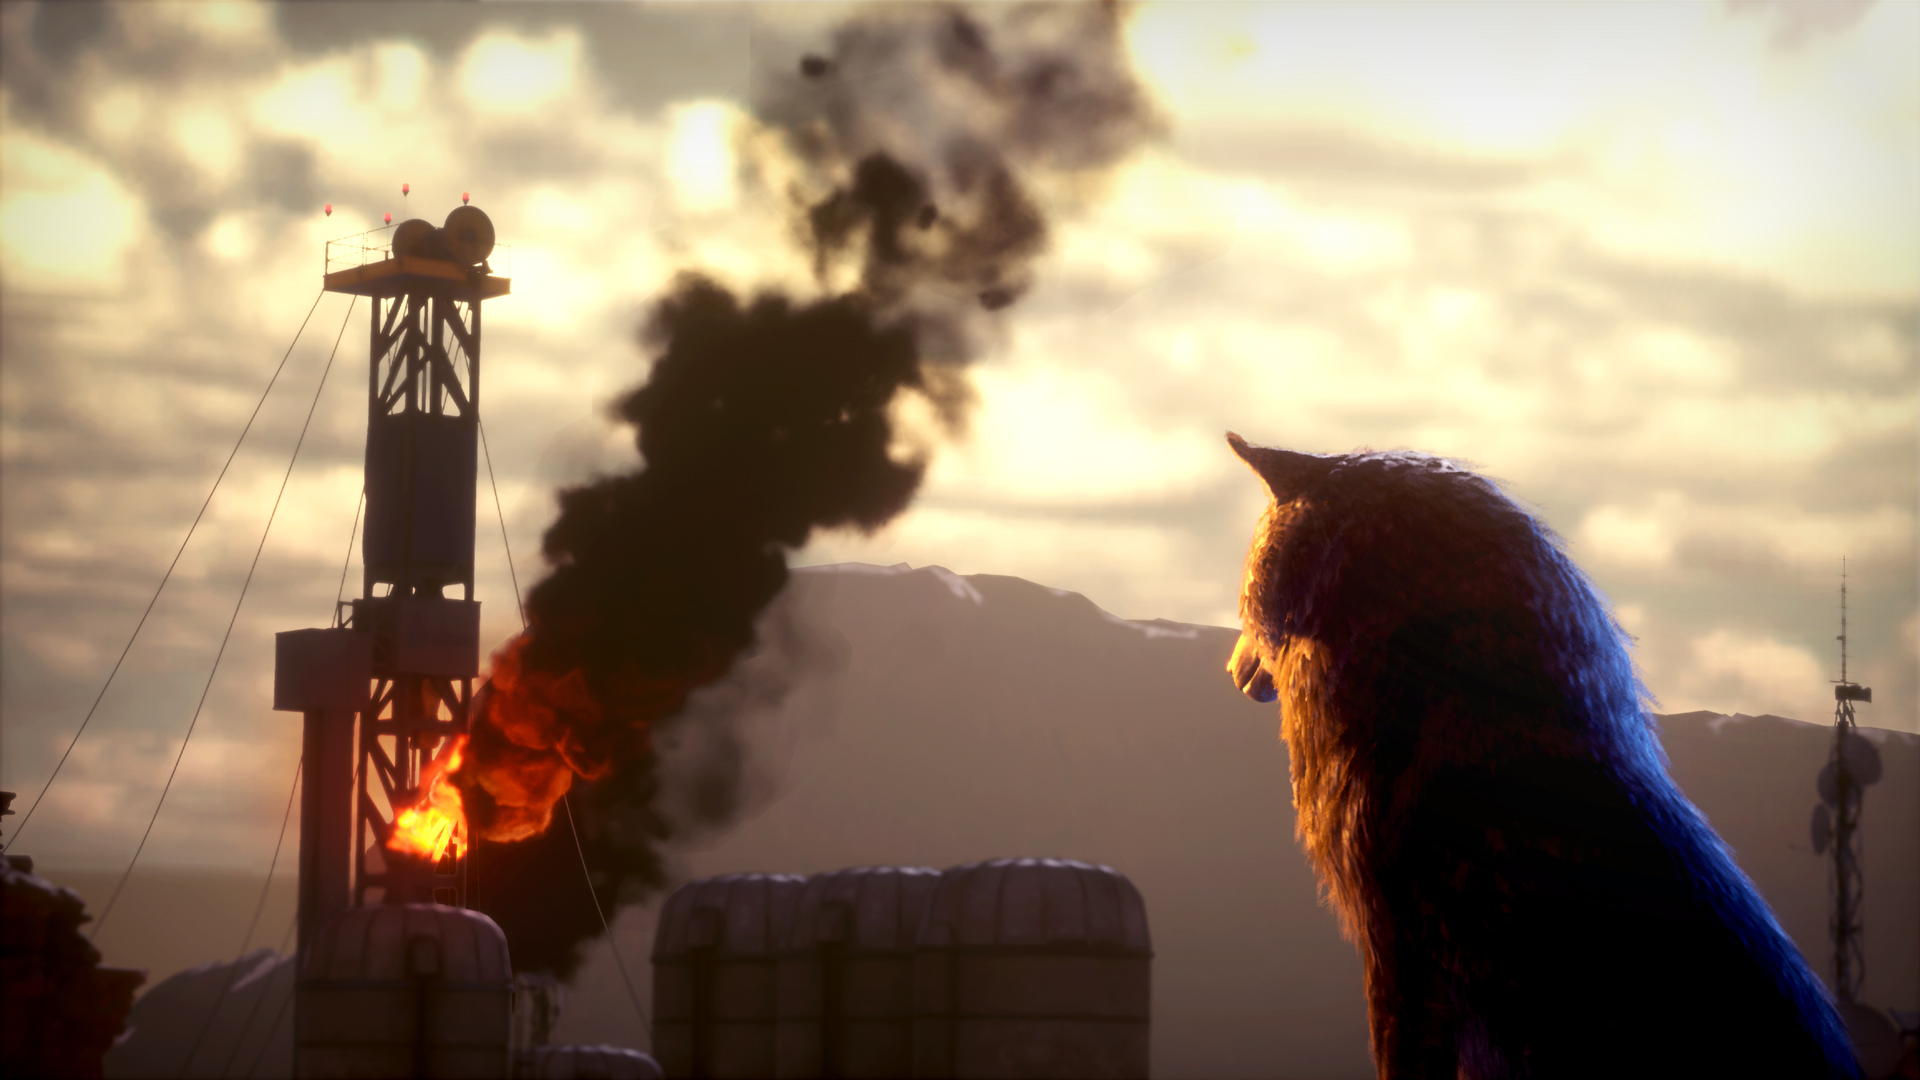 A wolf looks at a fuel refinery burning oil in the distance